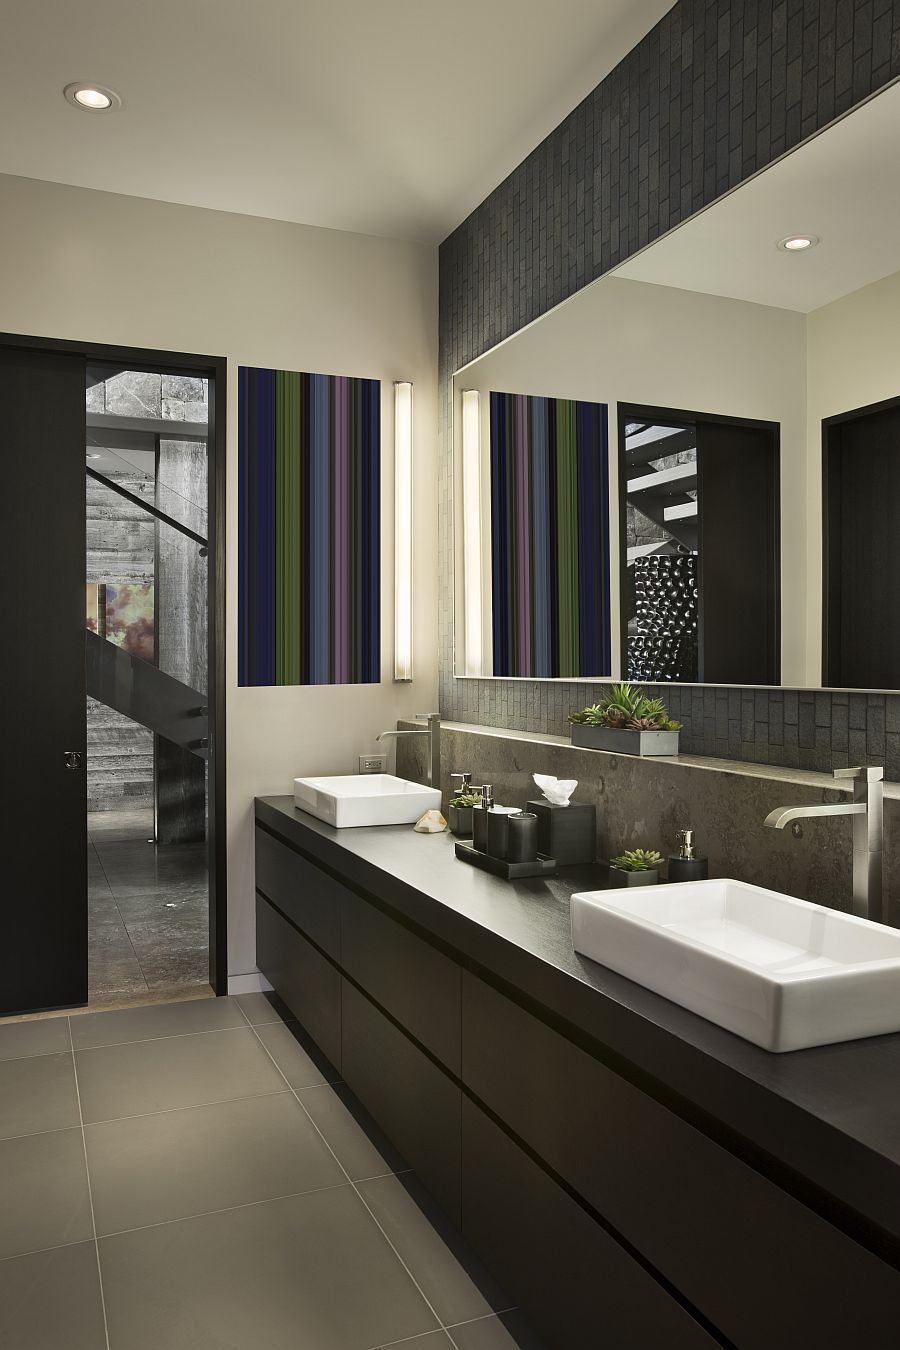 Modern Bathroom Design Ideas 2013 ~ Private luxury ski resort in montana by len cotsovolos